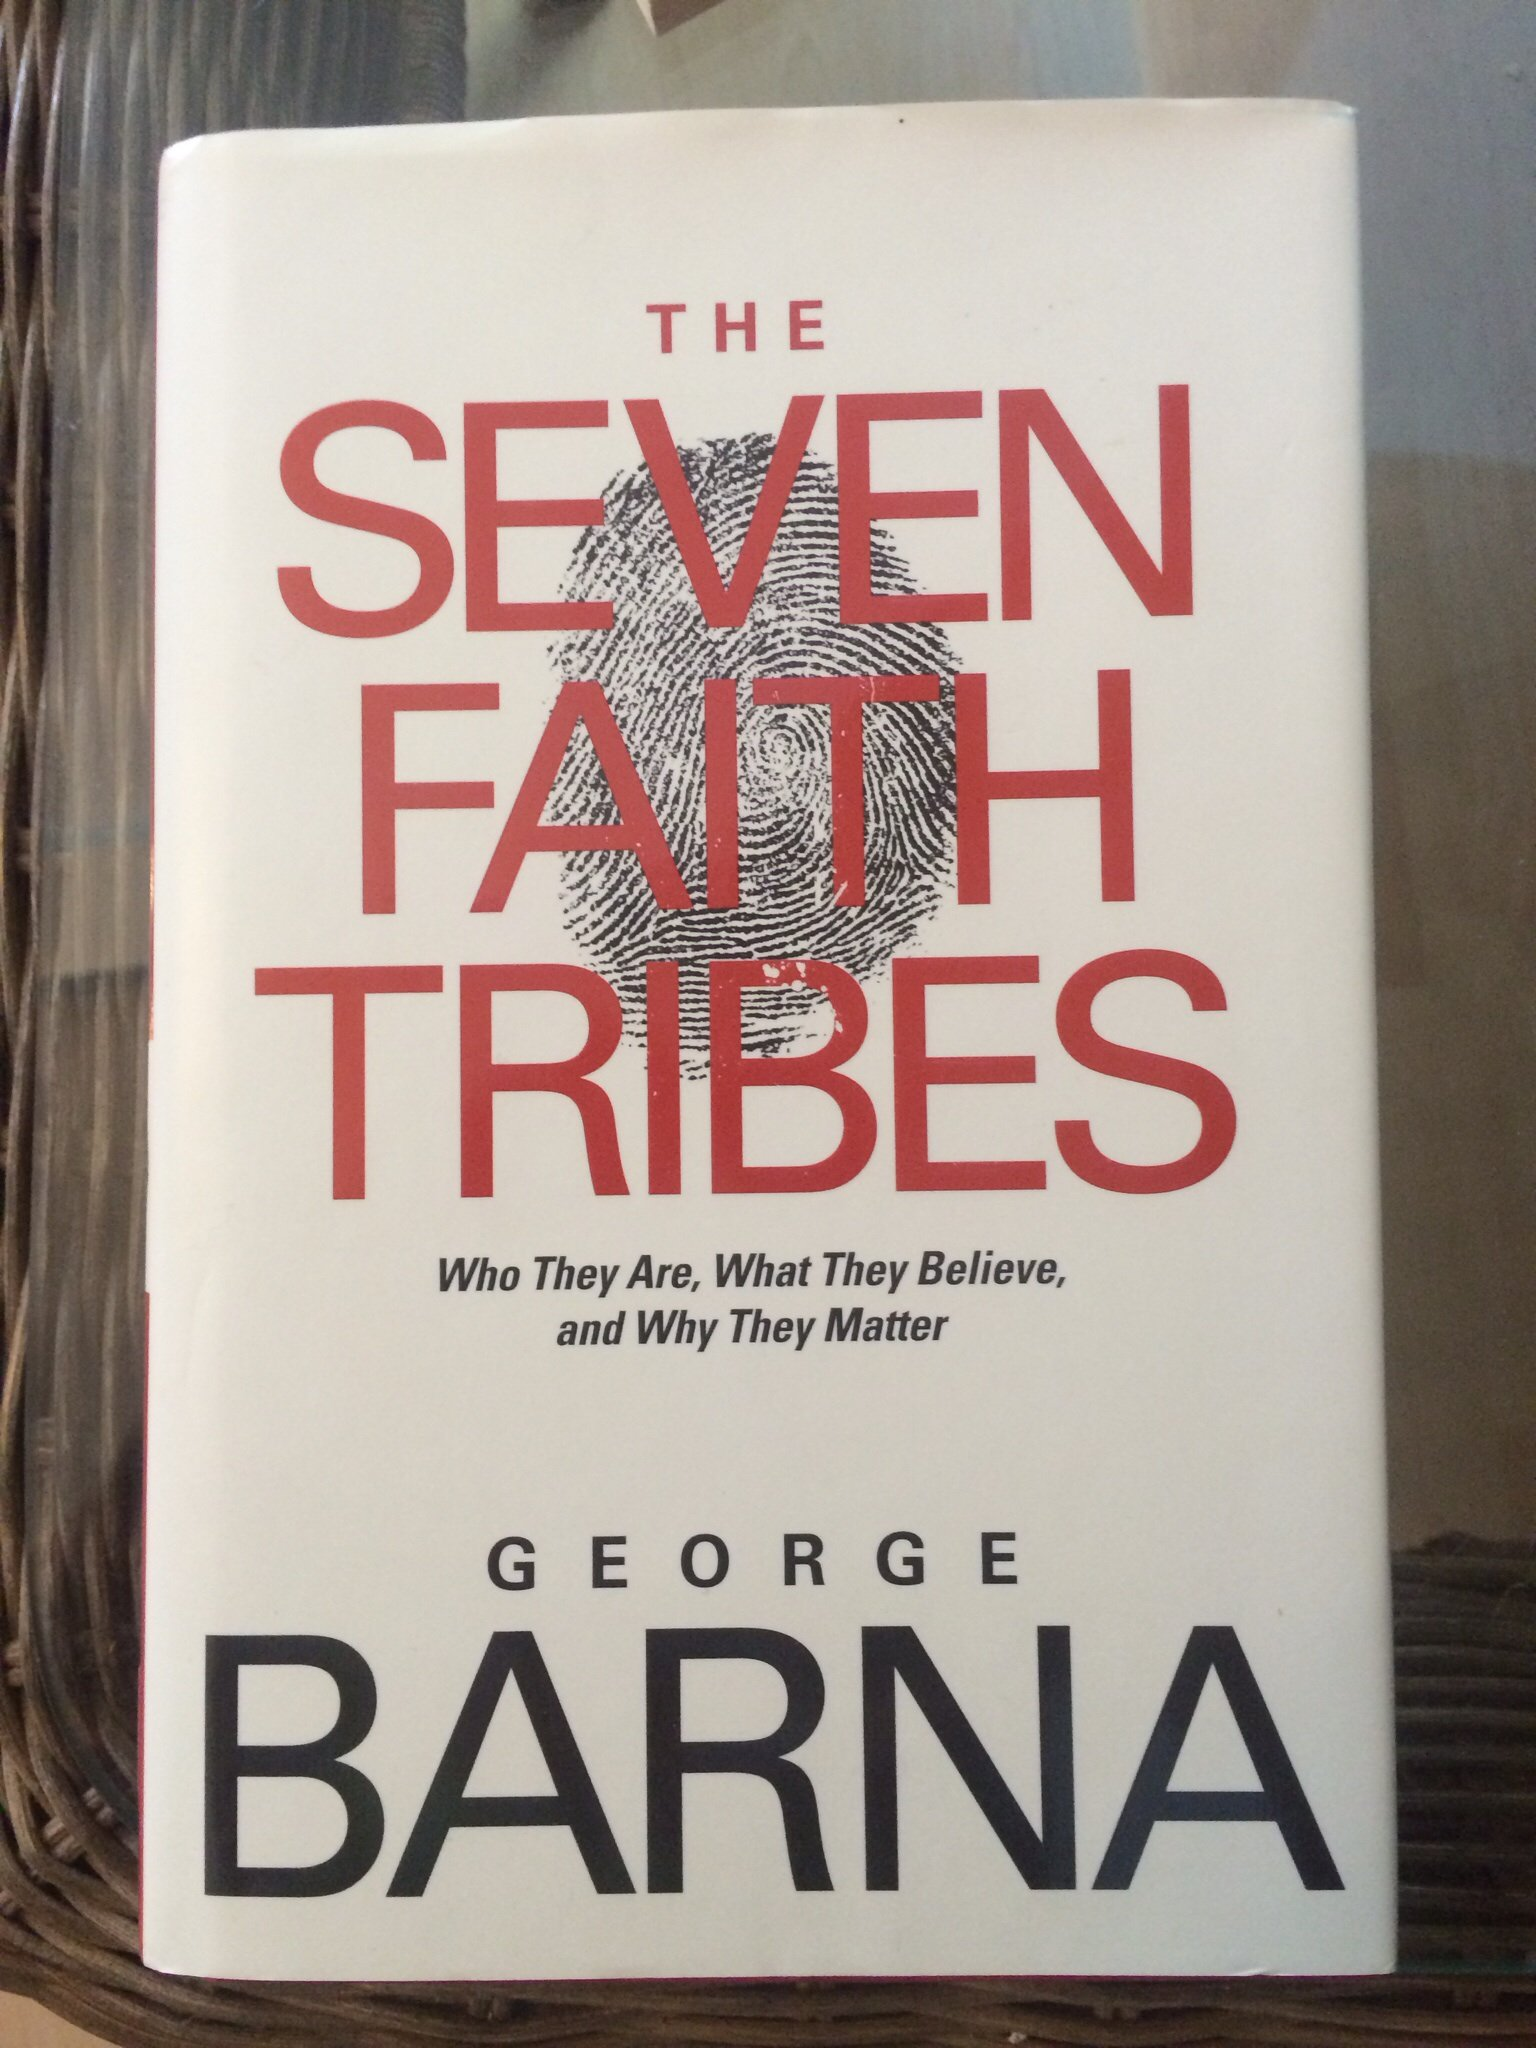 Download The Seven Faith Tribes: Who They Are, What They Believe, and Why They MatterTHE SEVEN FAITH TRIBES: WHO THEY ARE, WHAT THEY BELIEVE, AND WHY THEY MATTER by Barna, George (Author) on Apr-16-2009 Hardcover pdf epub